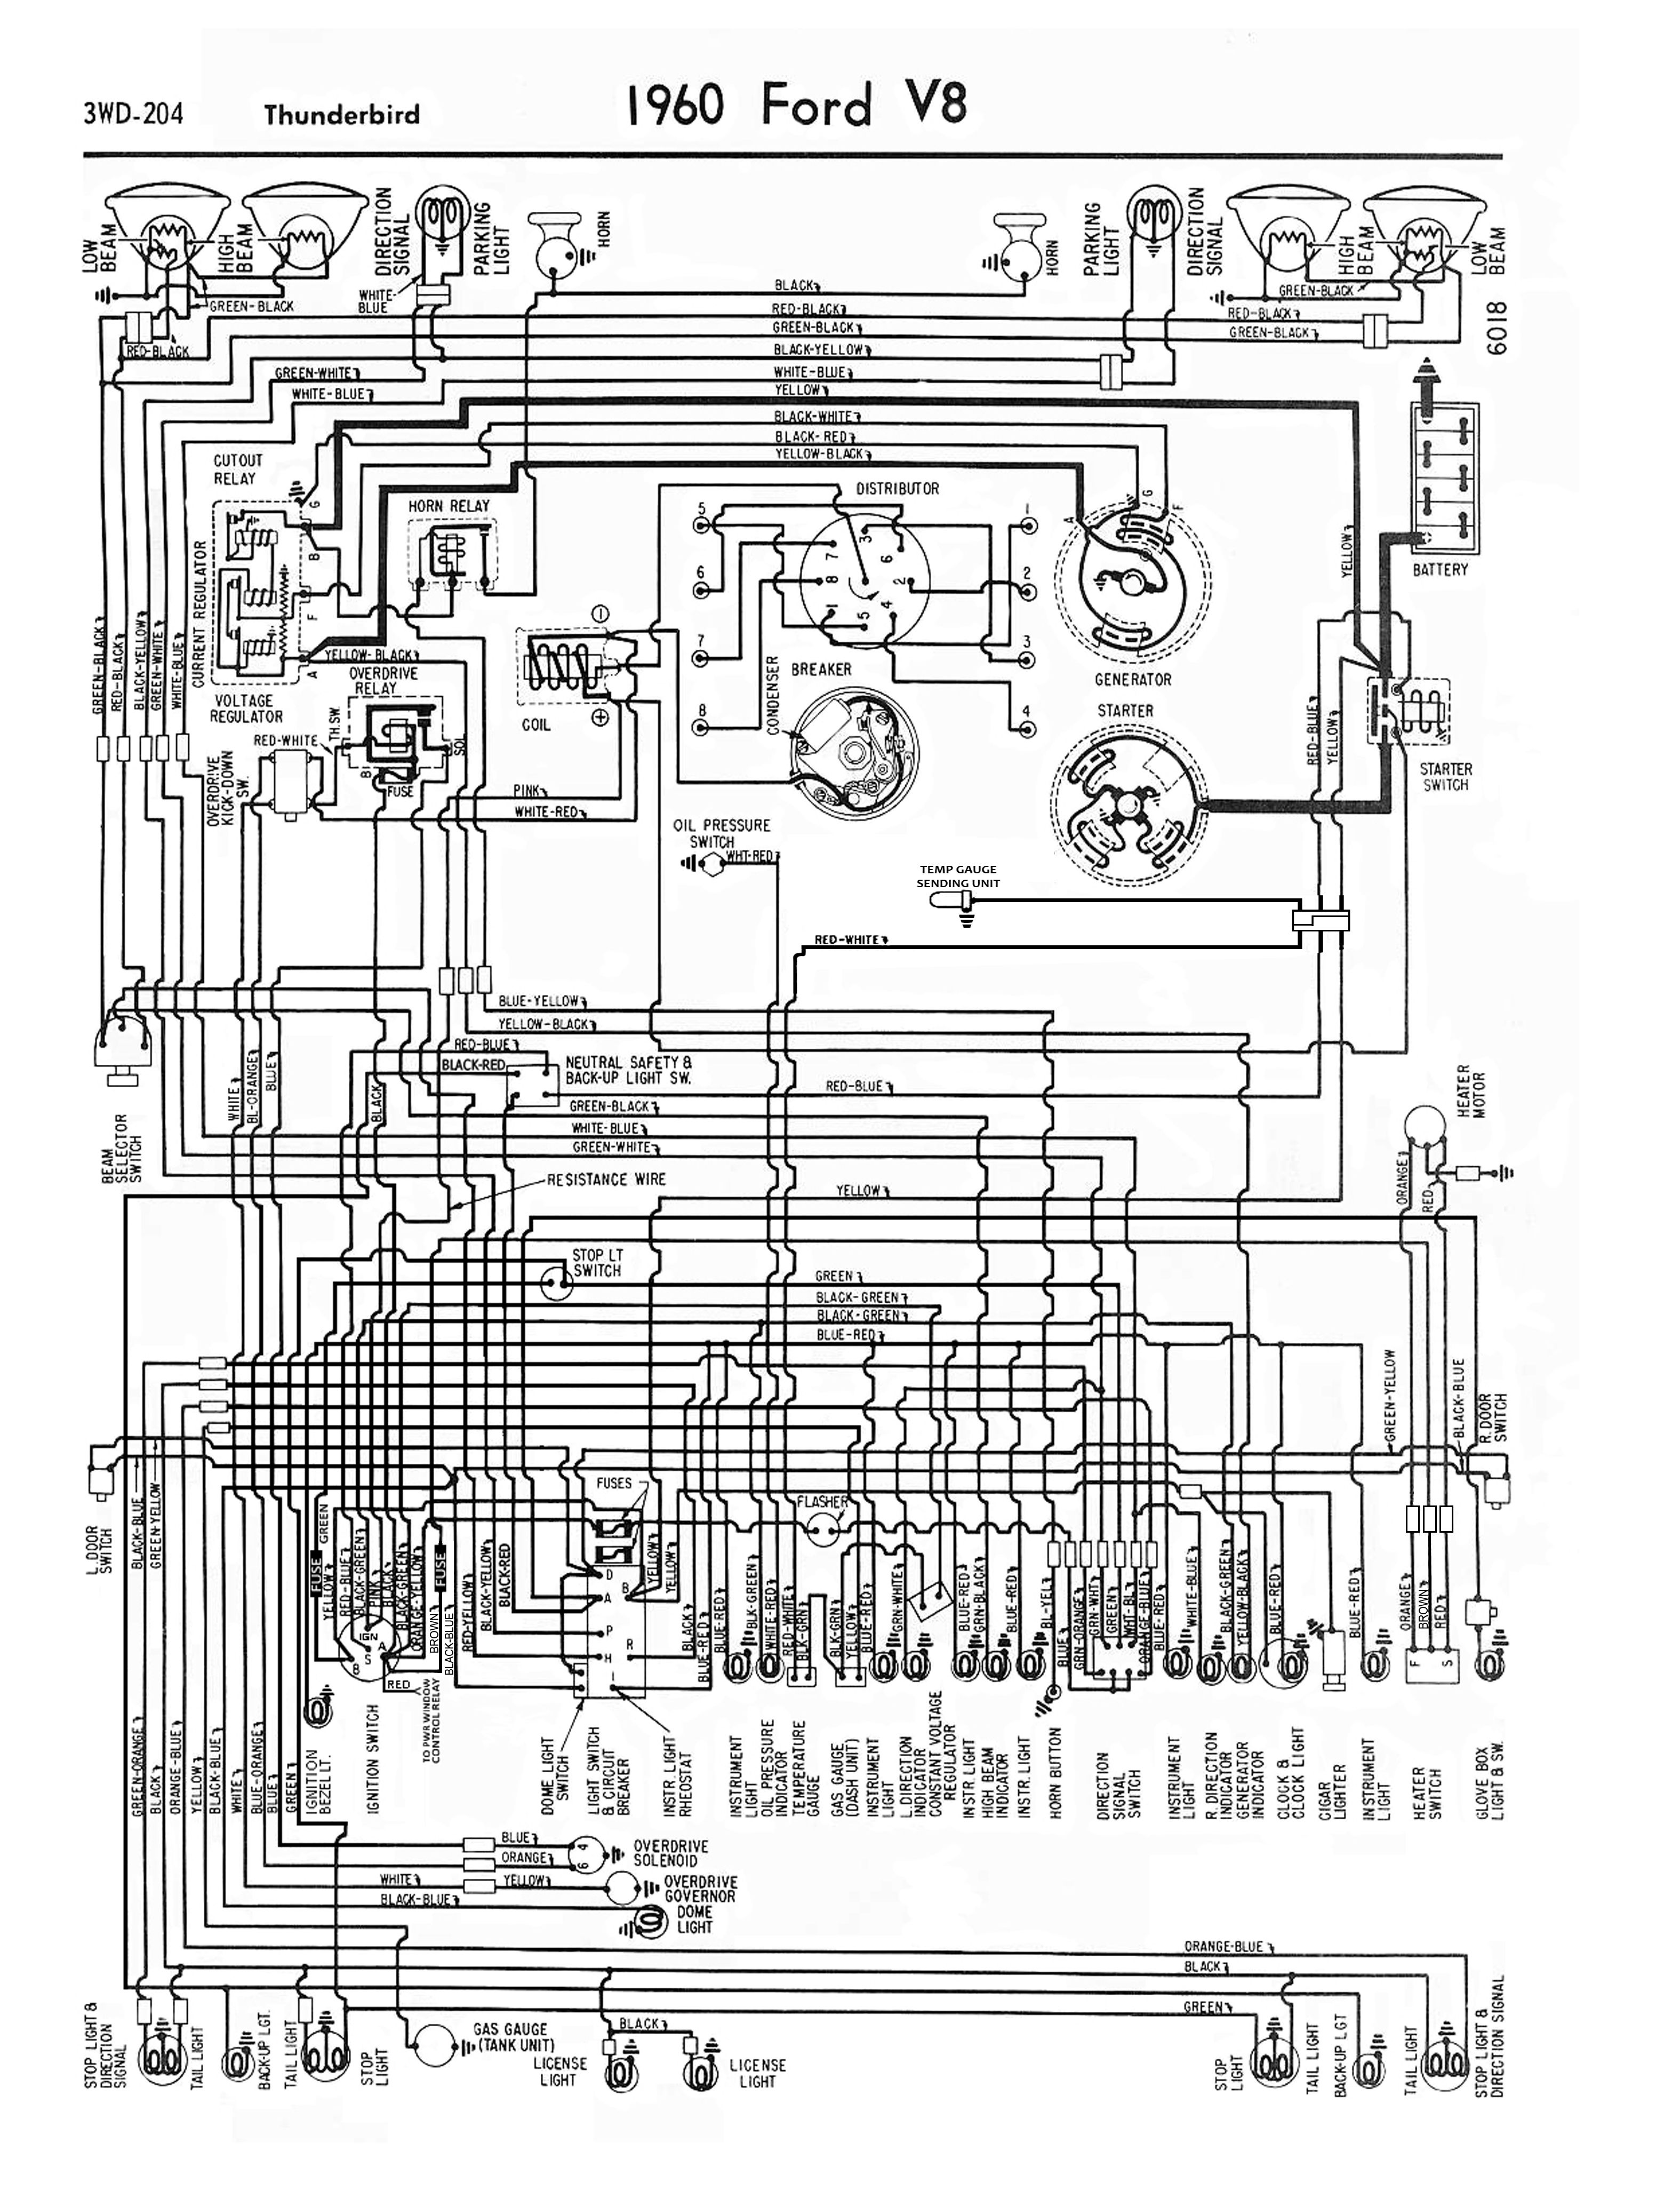 medium resolution of 60 t bird wiring diagram squarebird pinterest ford ford 1960 ford f100 truck wiring diagram 1960 ford wiring diagram